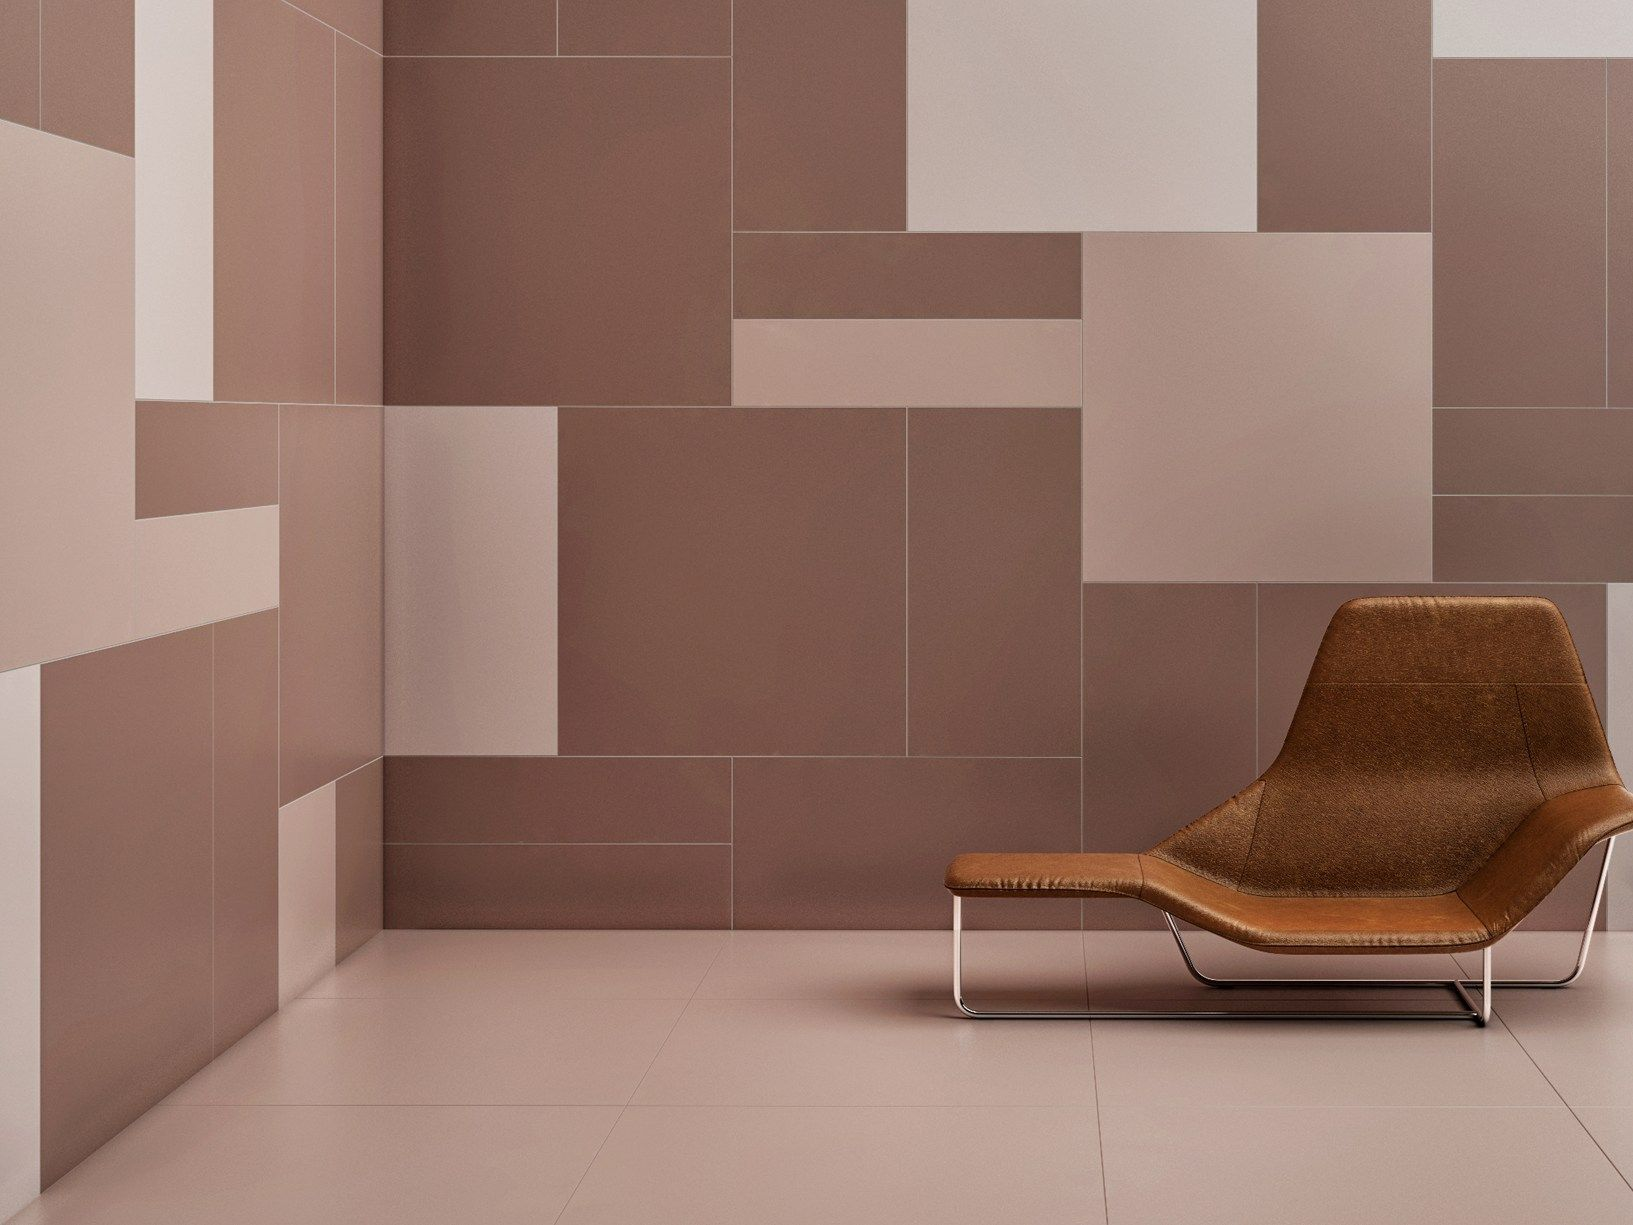 New colors, textures and materials for walls and floors